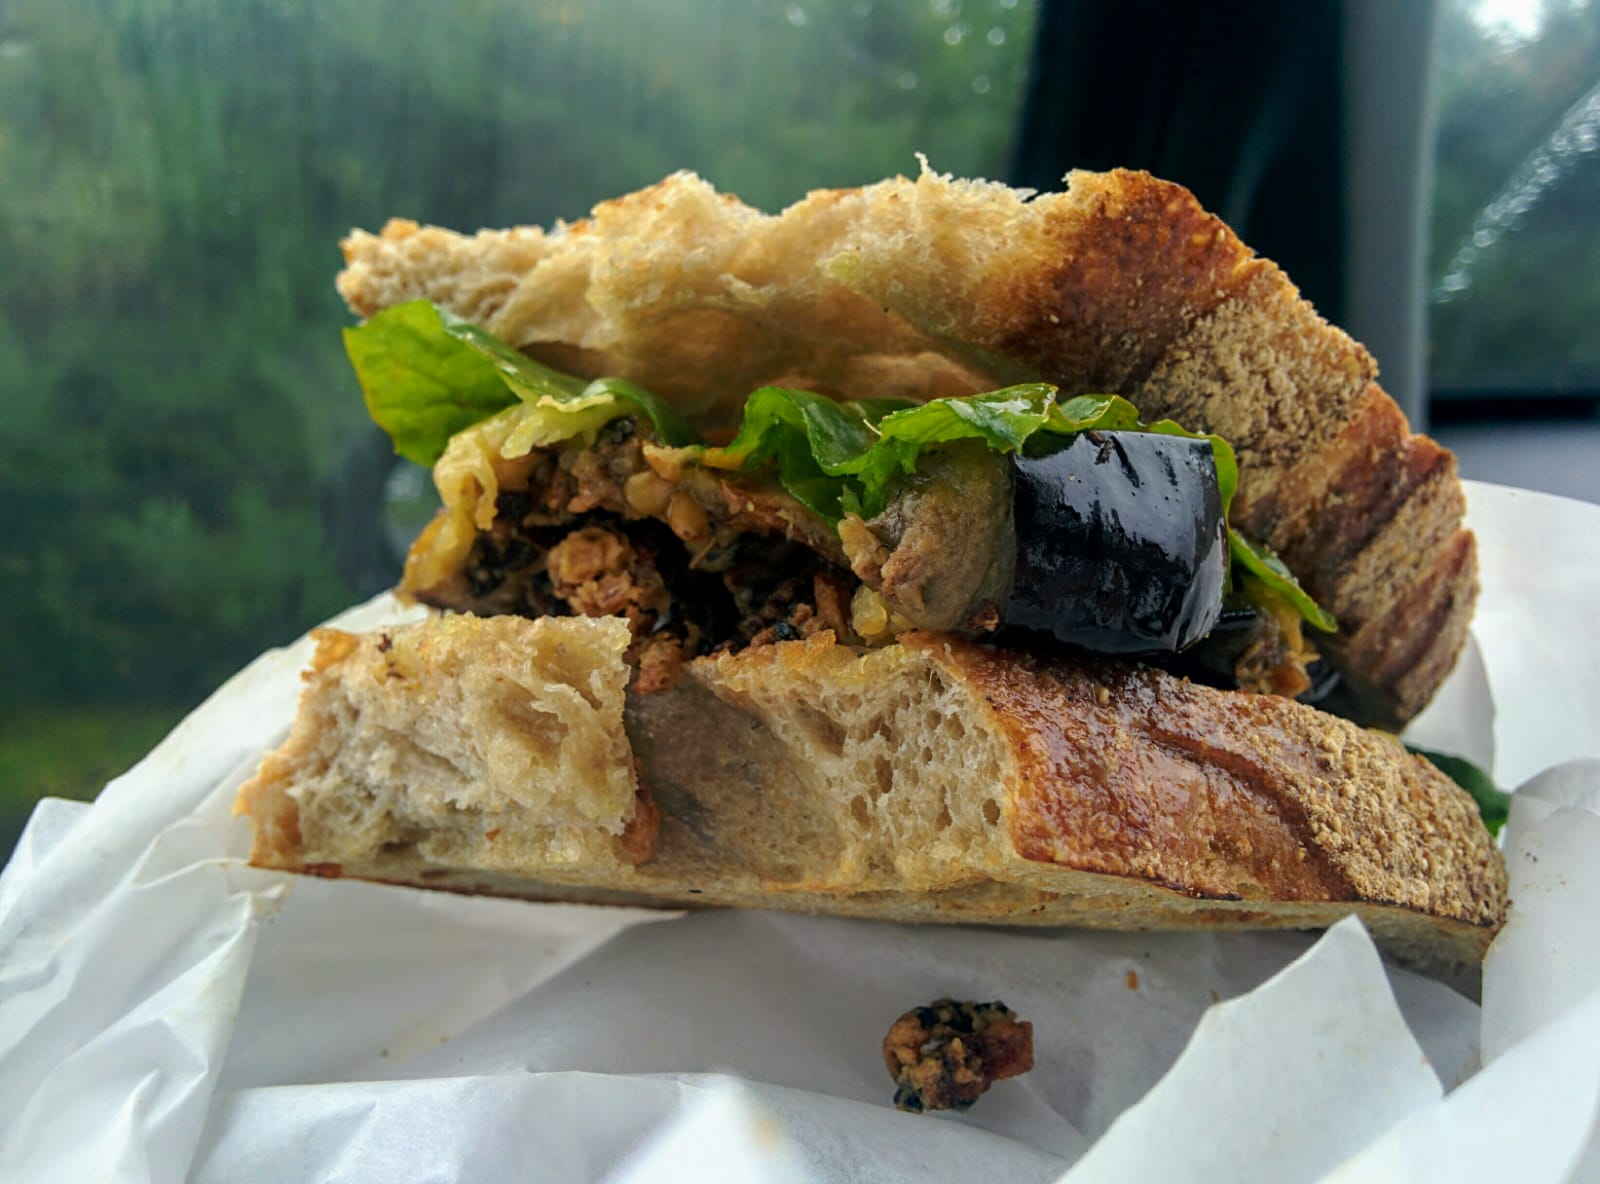 Aubergine and spiced onions on focaccia at the Sandwich Station (2019)